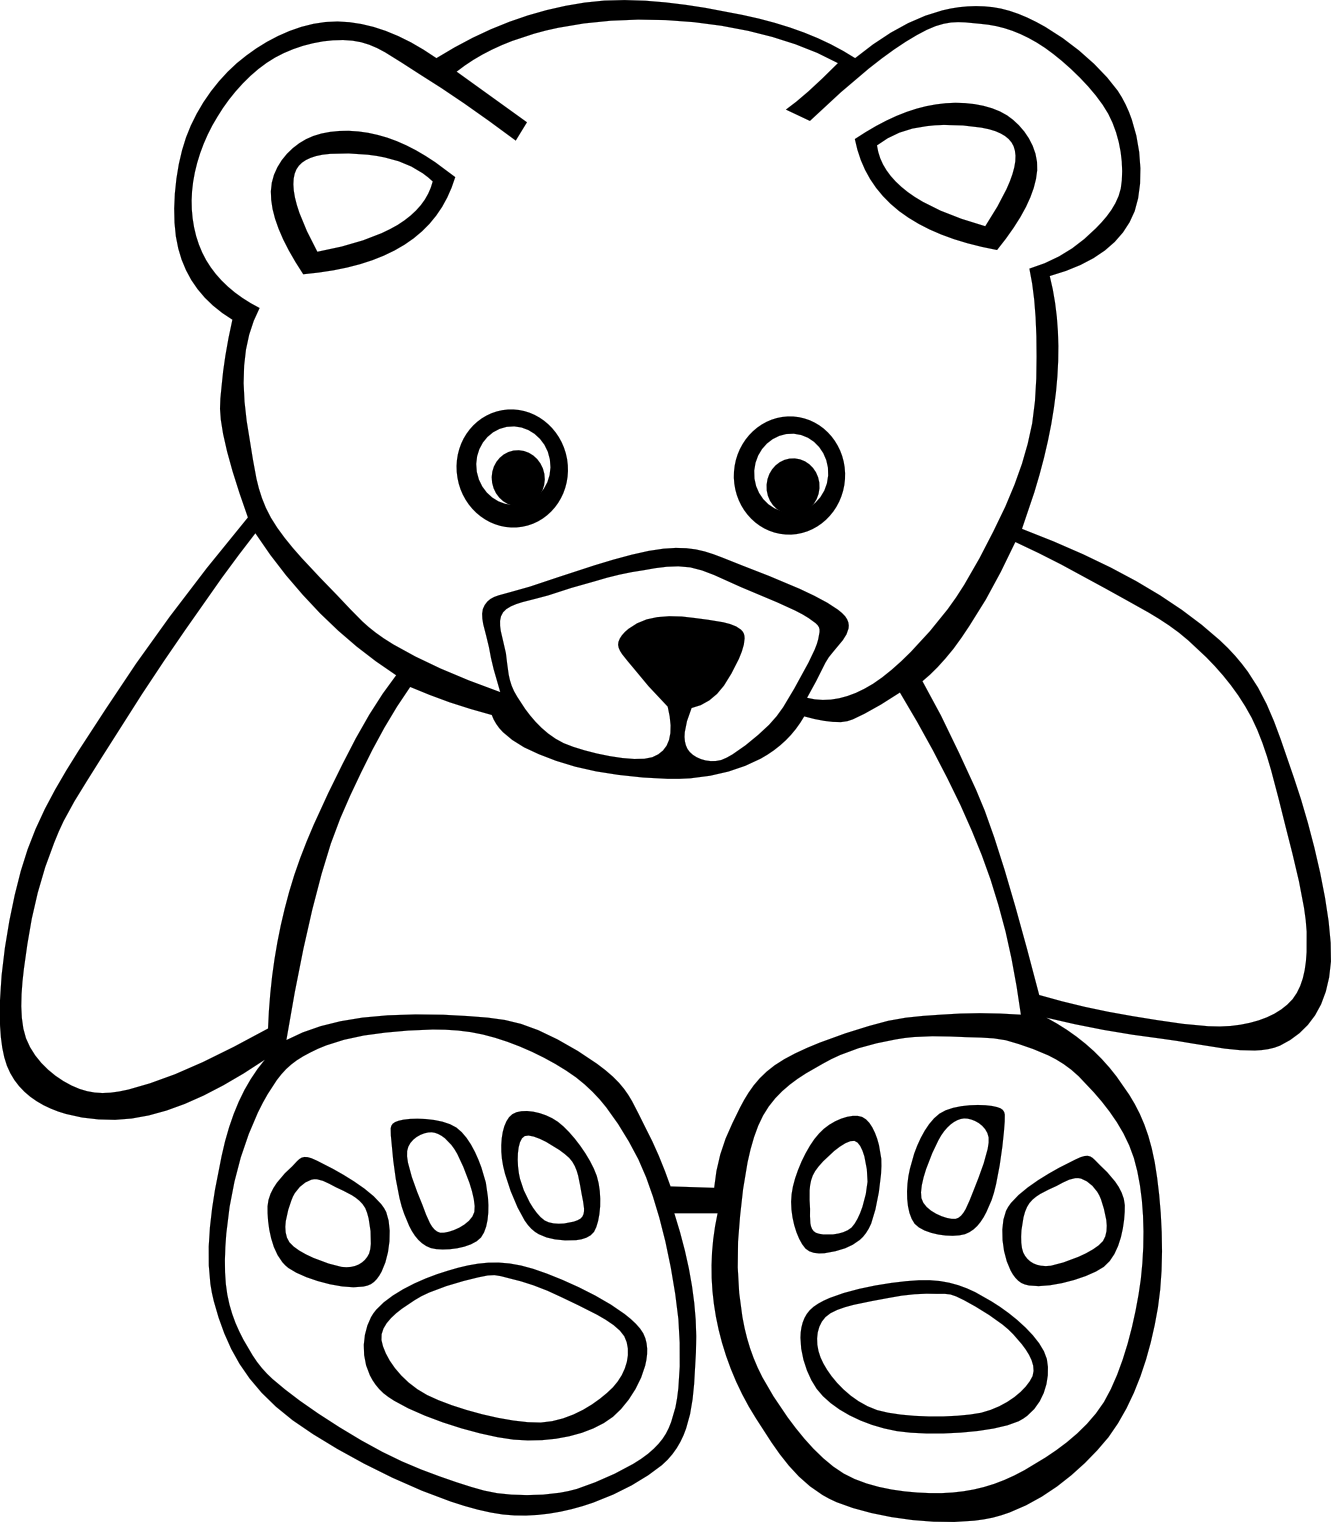 Cute Lion Clipart Black And White | Free download best Cute Lion ...